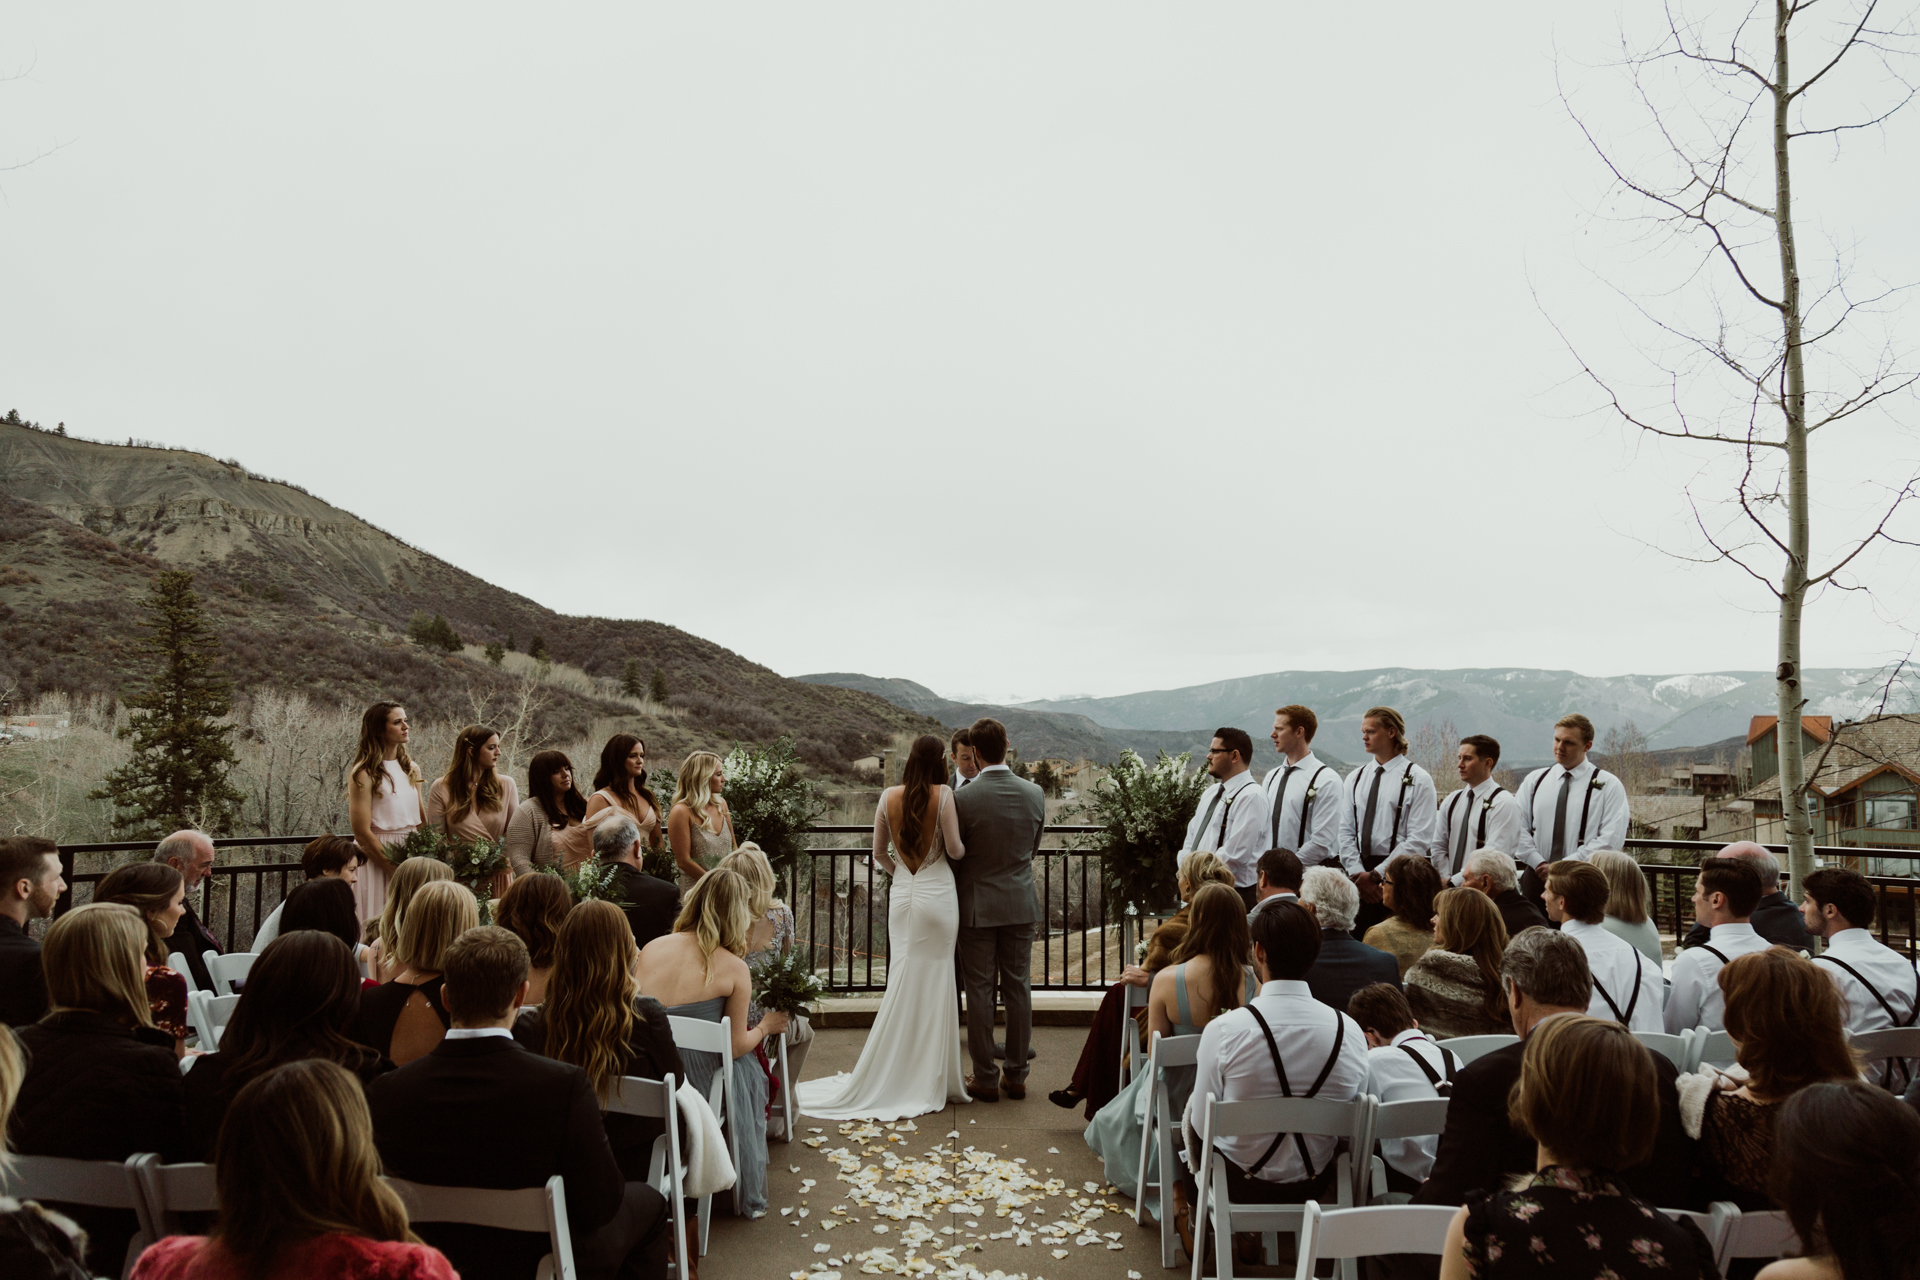 aspen-colorado-boho-mountain-wedding-1035.jpg